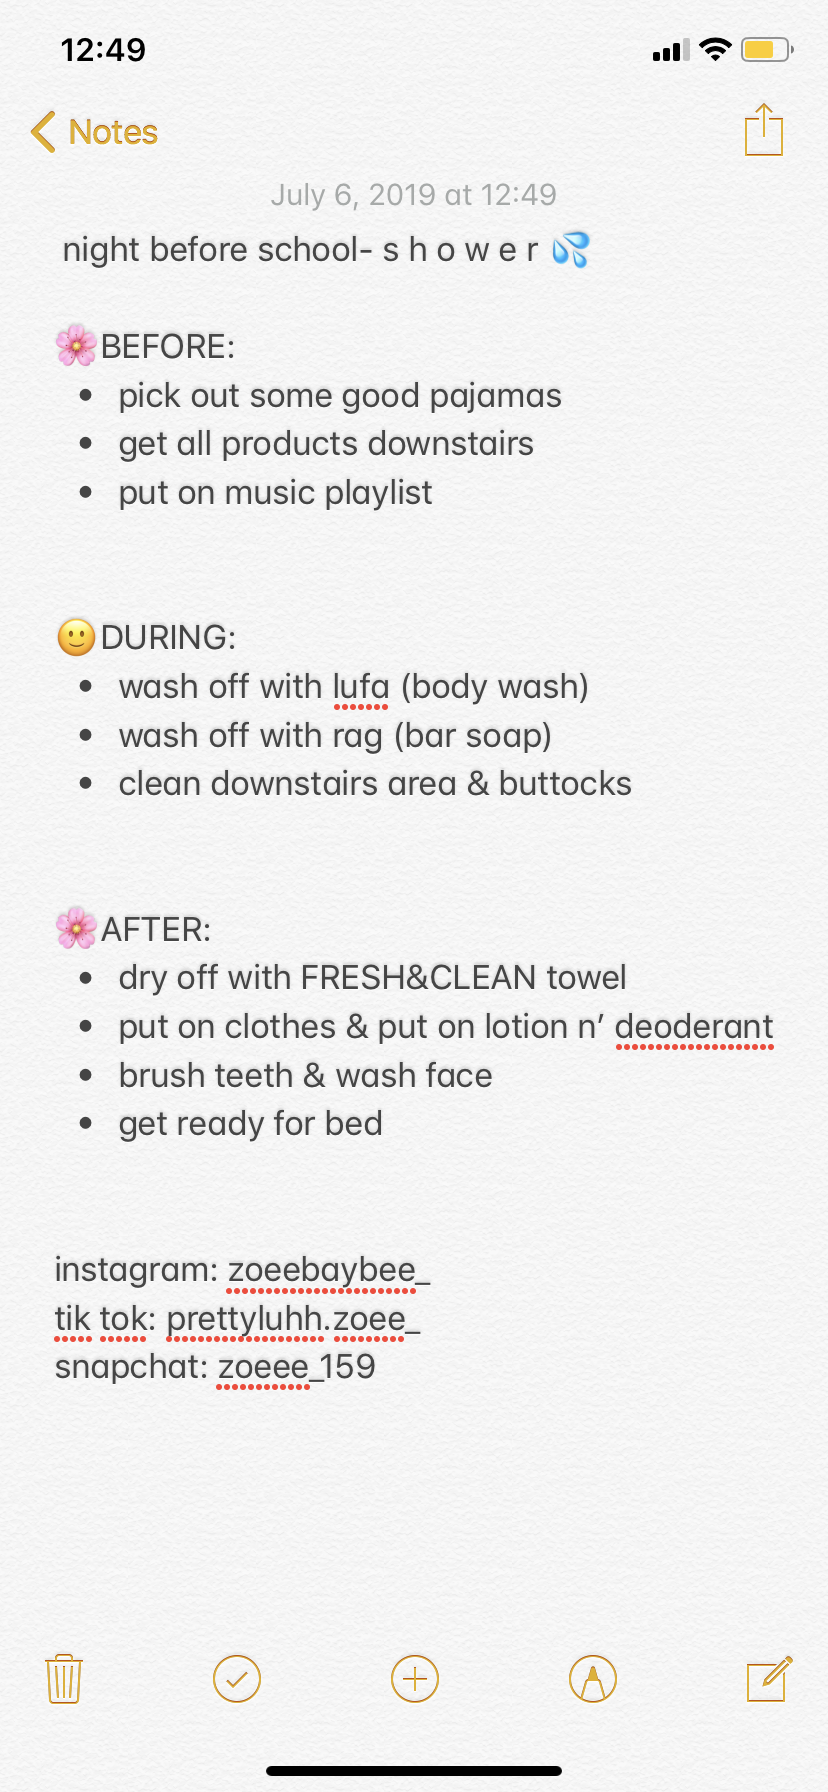 What I Will Be Doing On The Night Before School Im Going To 7th Grade Btw Night Before School School Morning Routine Before School Routine